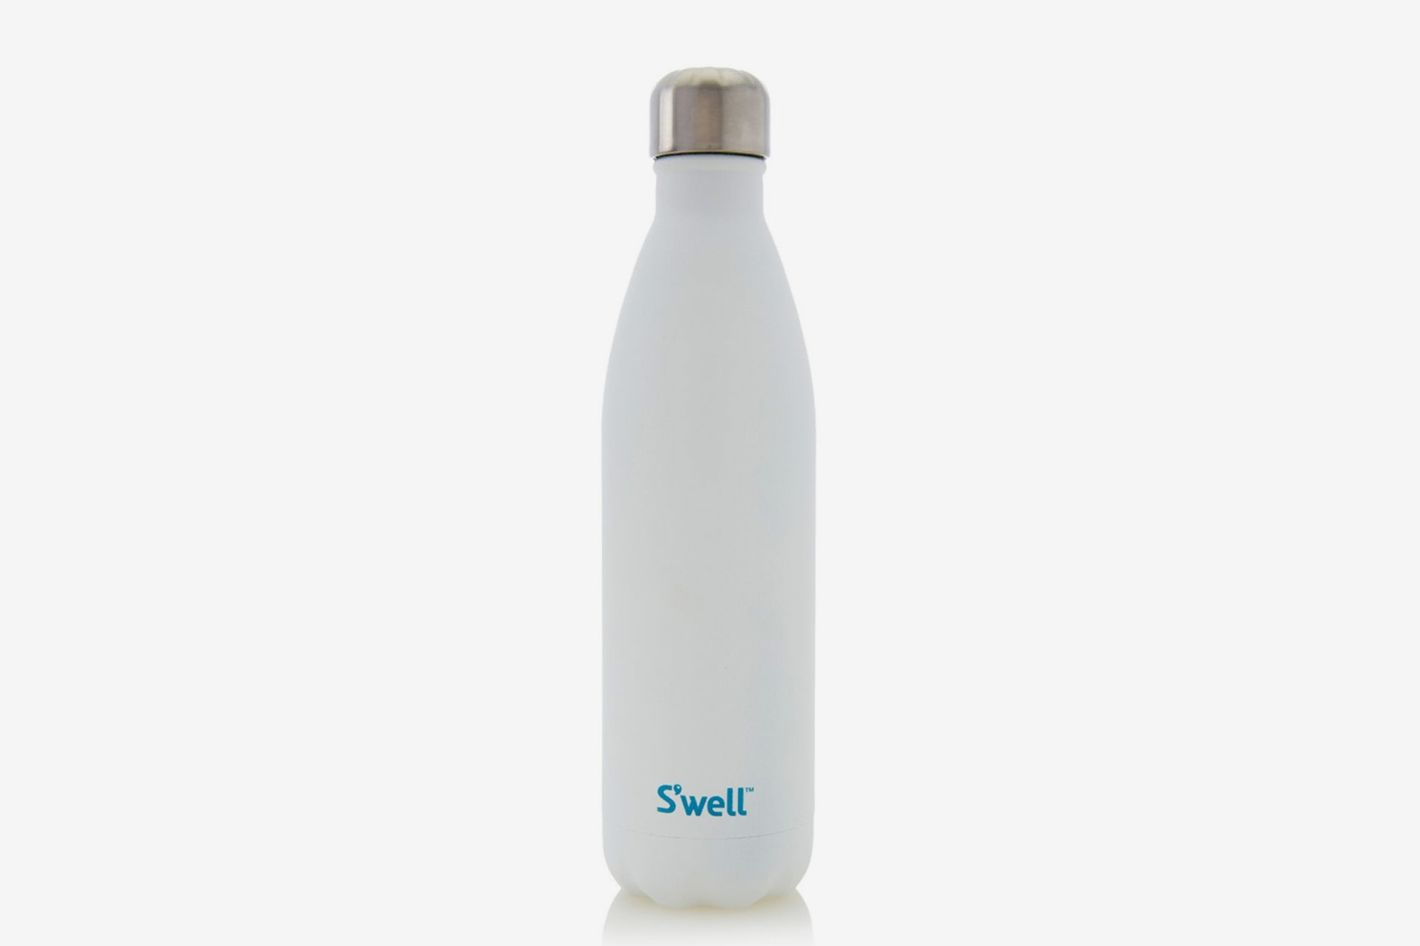 S'well Stone Stainless Steel Bottle